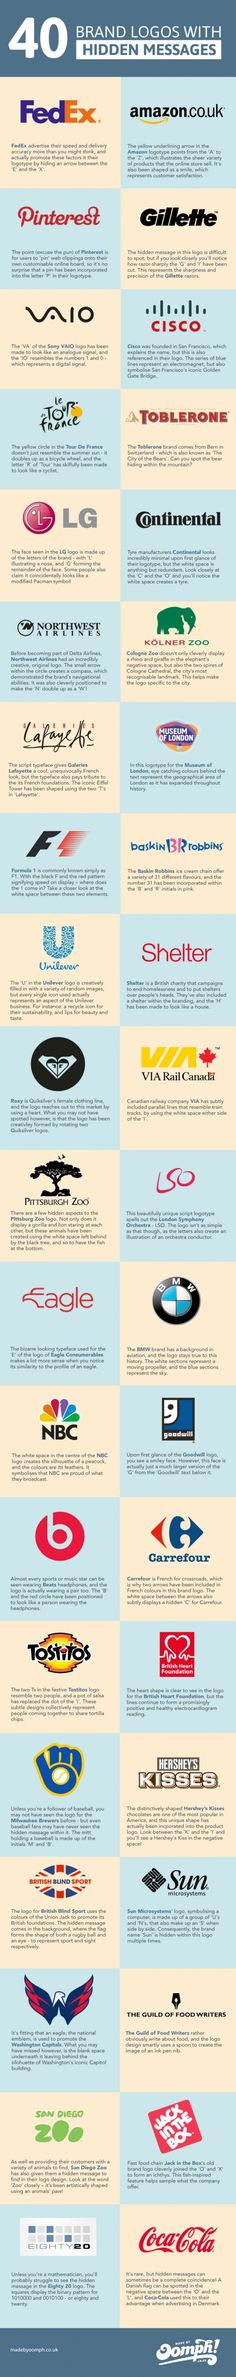 40 Logos With Hidden Messages | UltraLinx